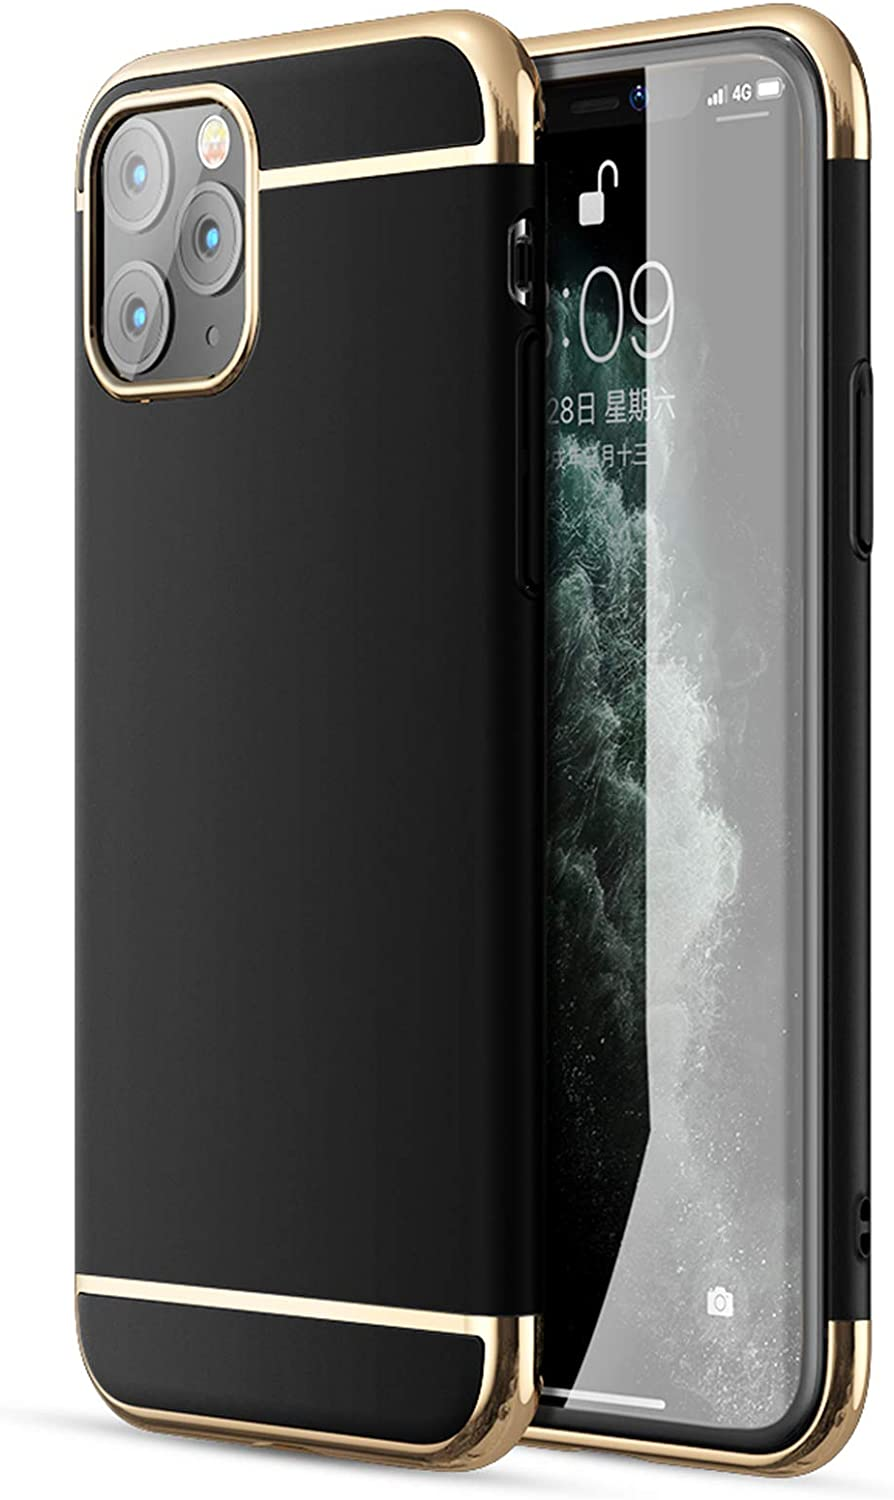 iPhone 11 Pro Max Case, CROSYMX 3 in 1 Ultra Thin and Slim Hard Case Coated Non Slip Matte Surface with Electroplate Frame for Apple iPhone 11 Pro Max (6.5'')(2019) - Black